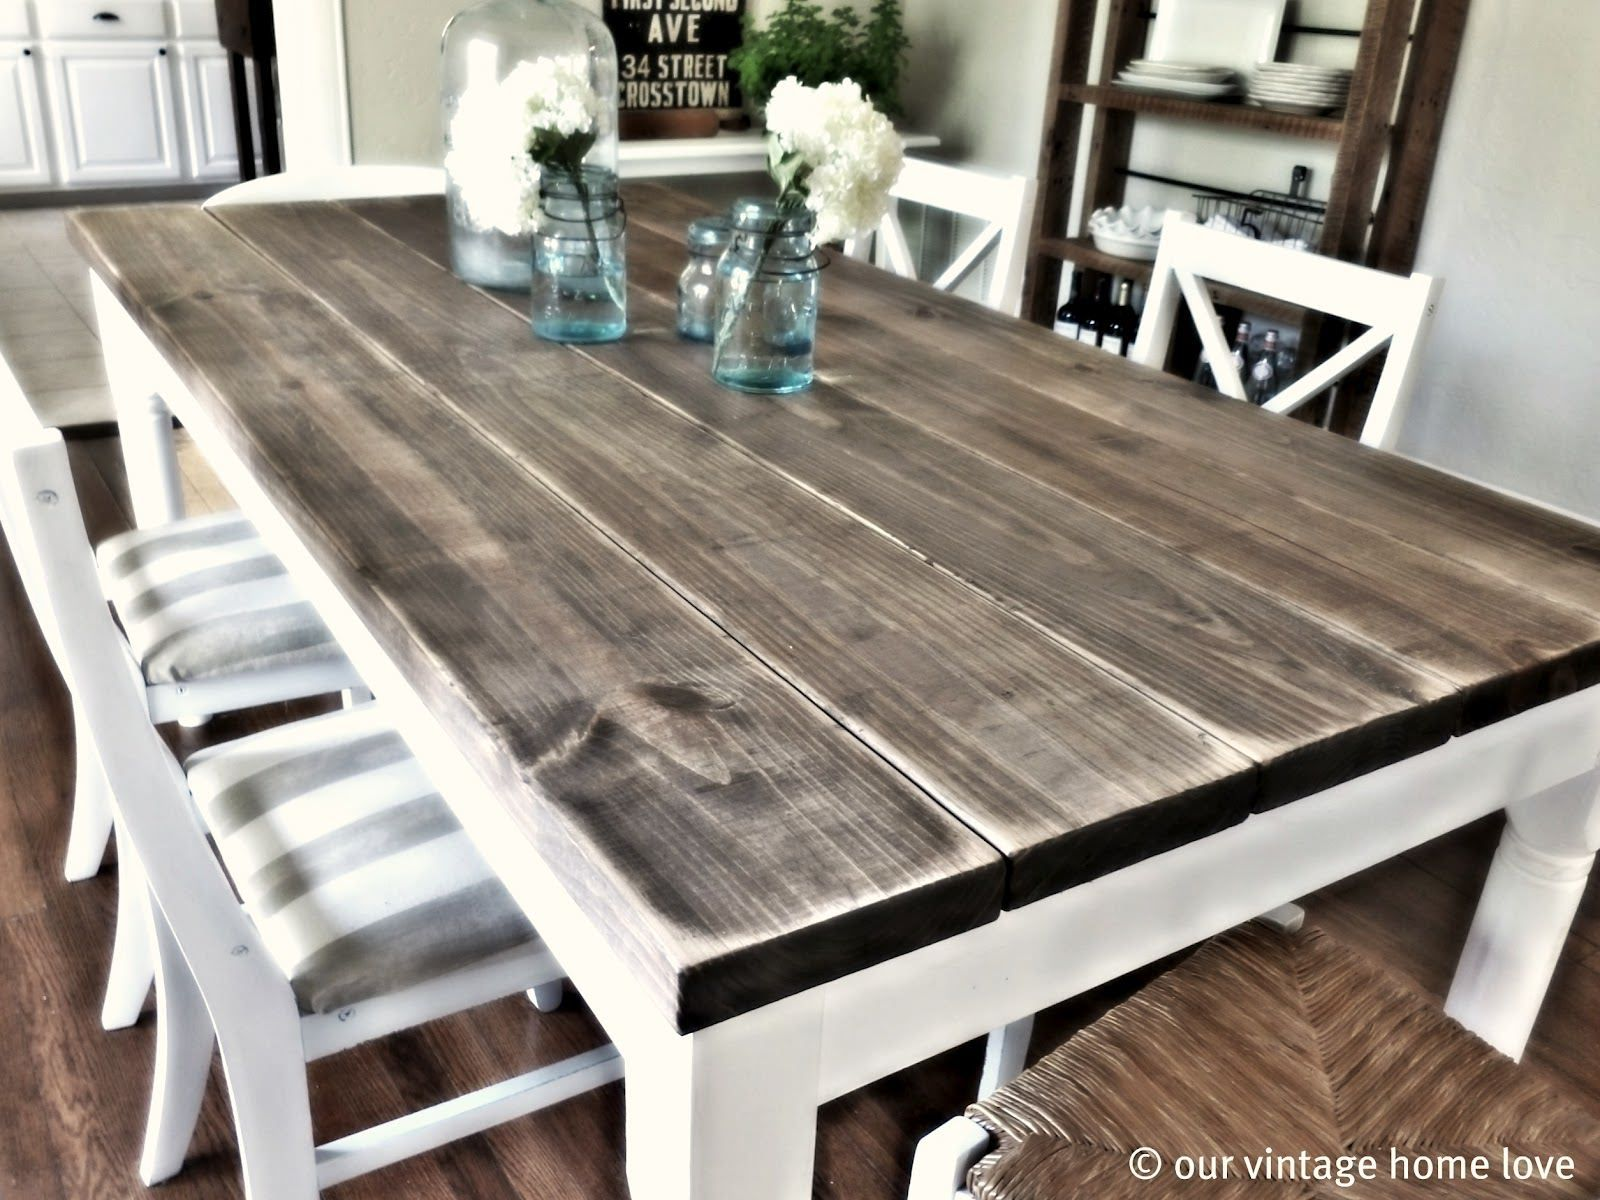 best 25+ table top covers ideas only on pinterest | resin table